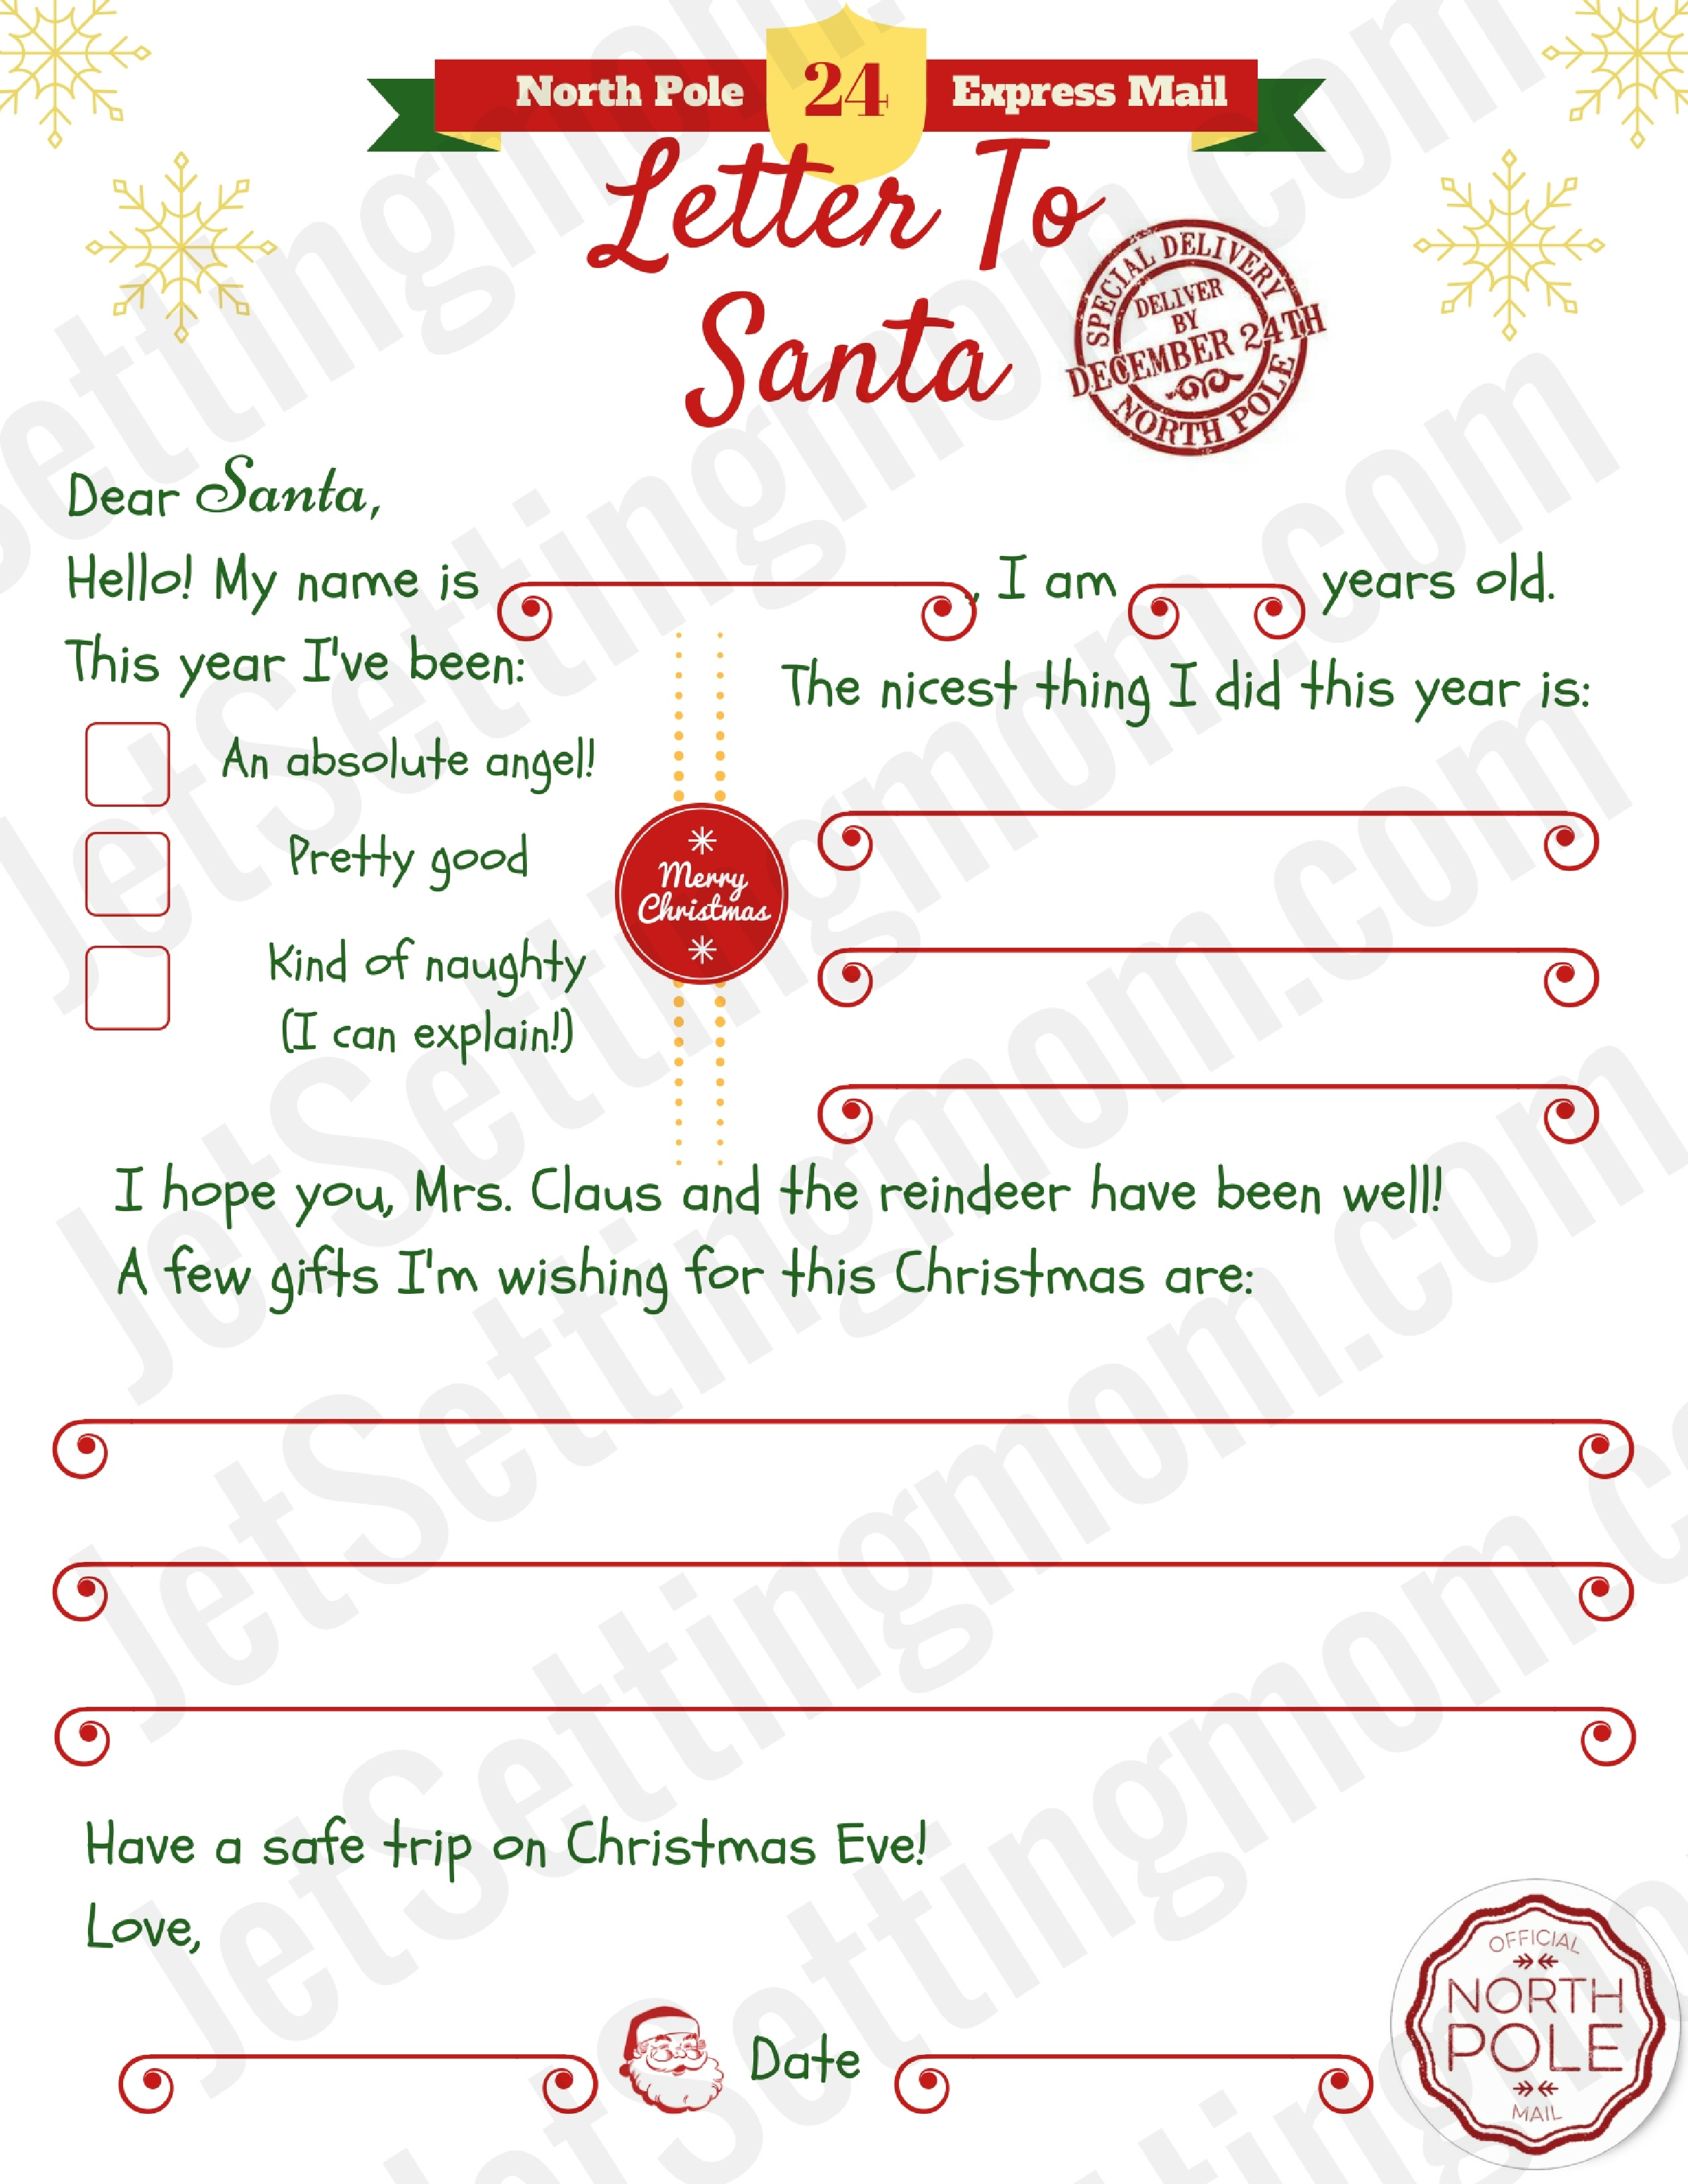 Free Printable Letter To Santa Template - Writing To Santa Made Easy! - Free Printable Santa Reply Letter Template